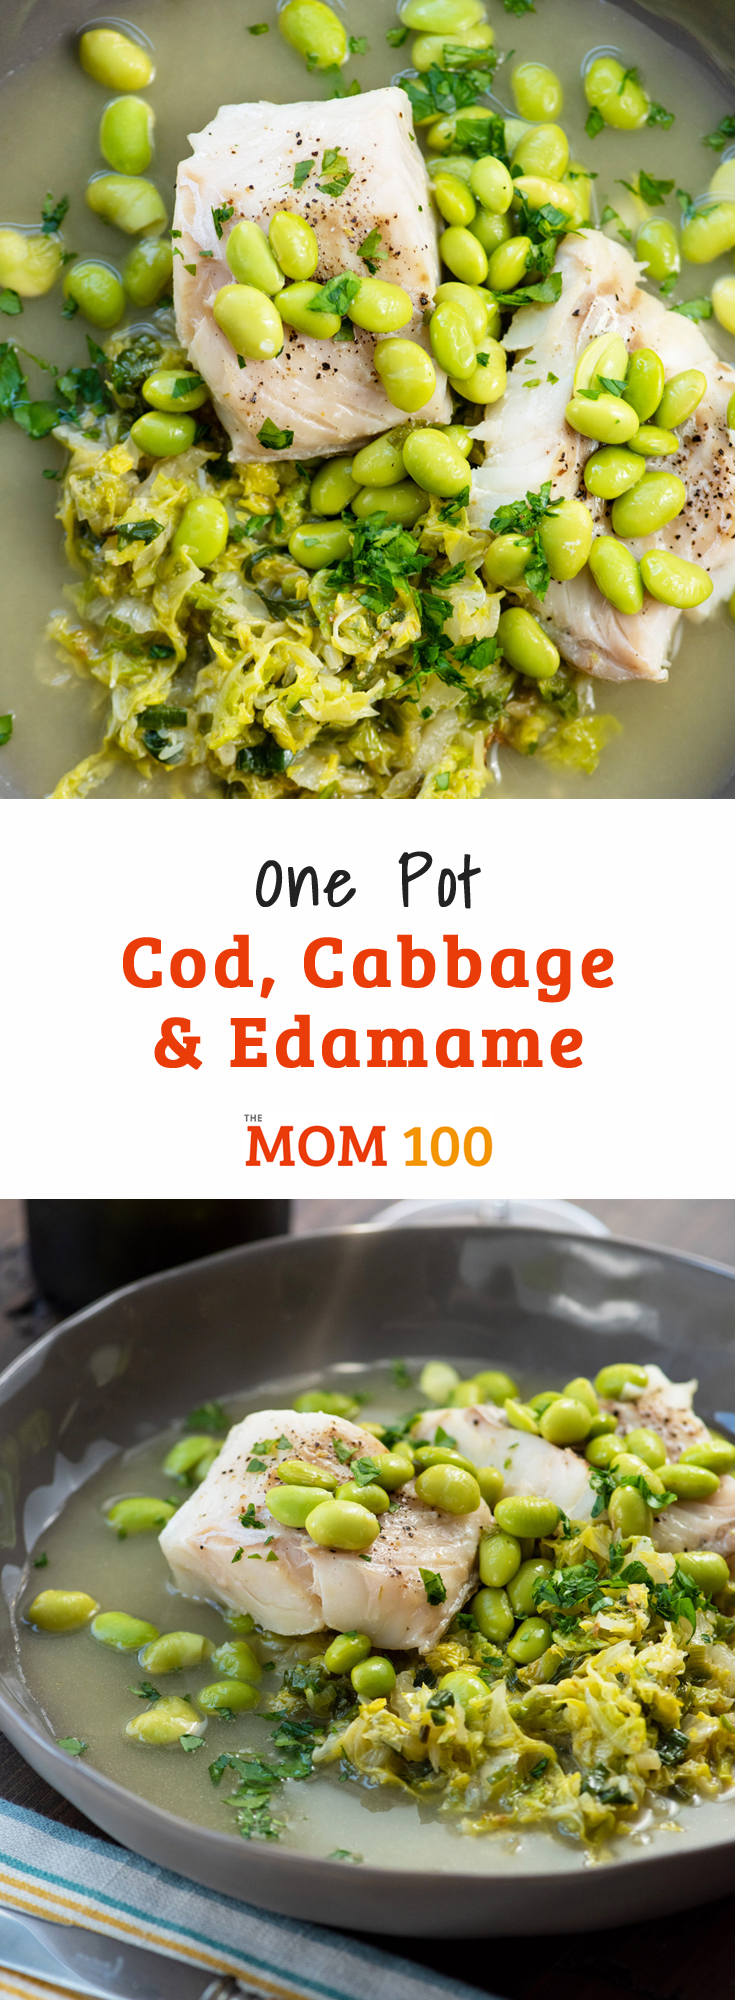 One Pot Cod, Cabbage and Edamame is a perfect light dinner.  Make this when you need something simple and healthy (but pretty and elegant as well!).